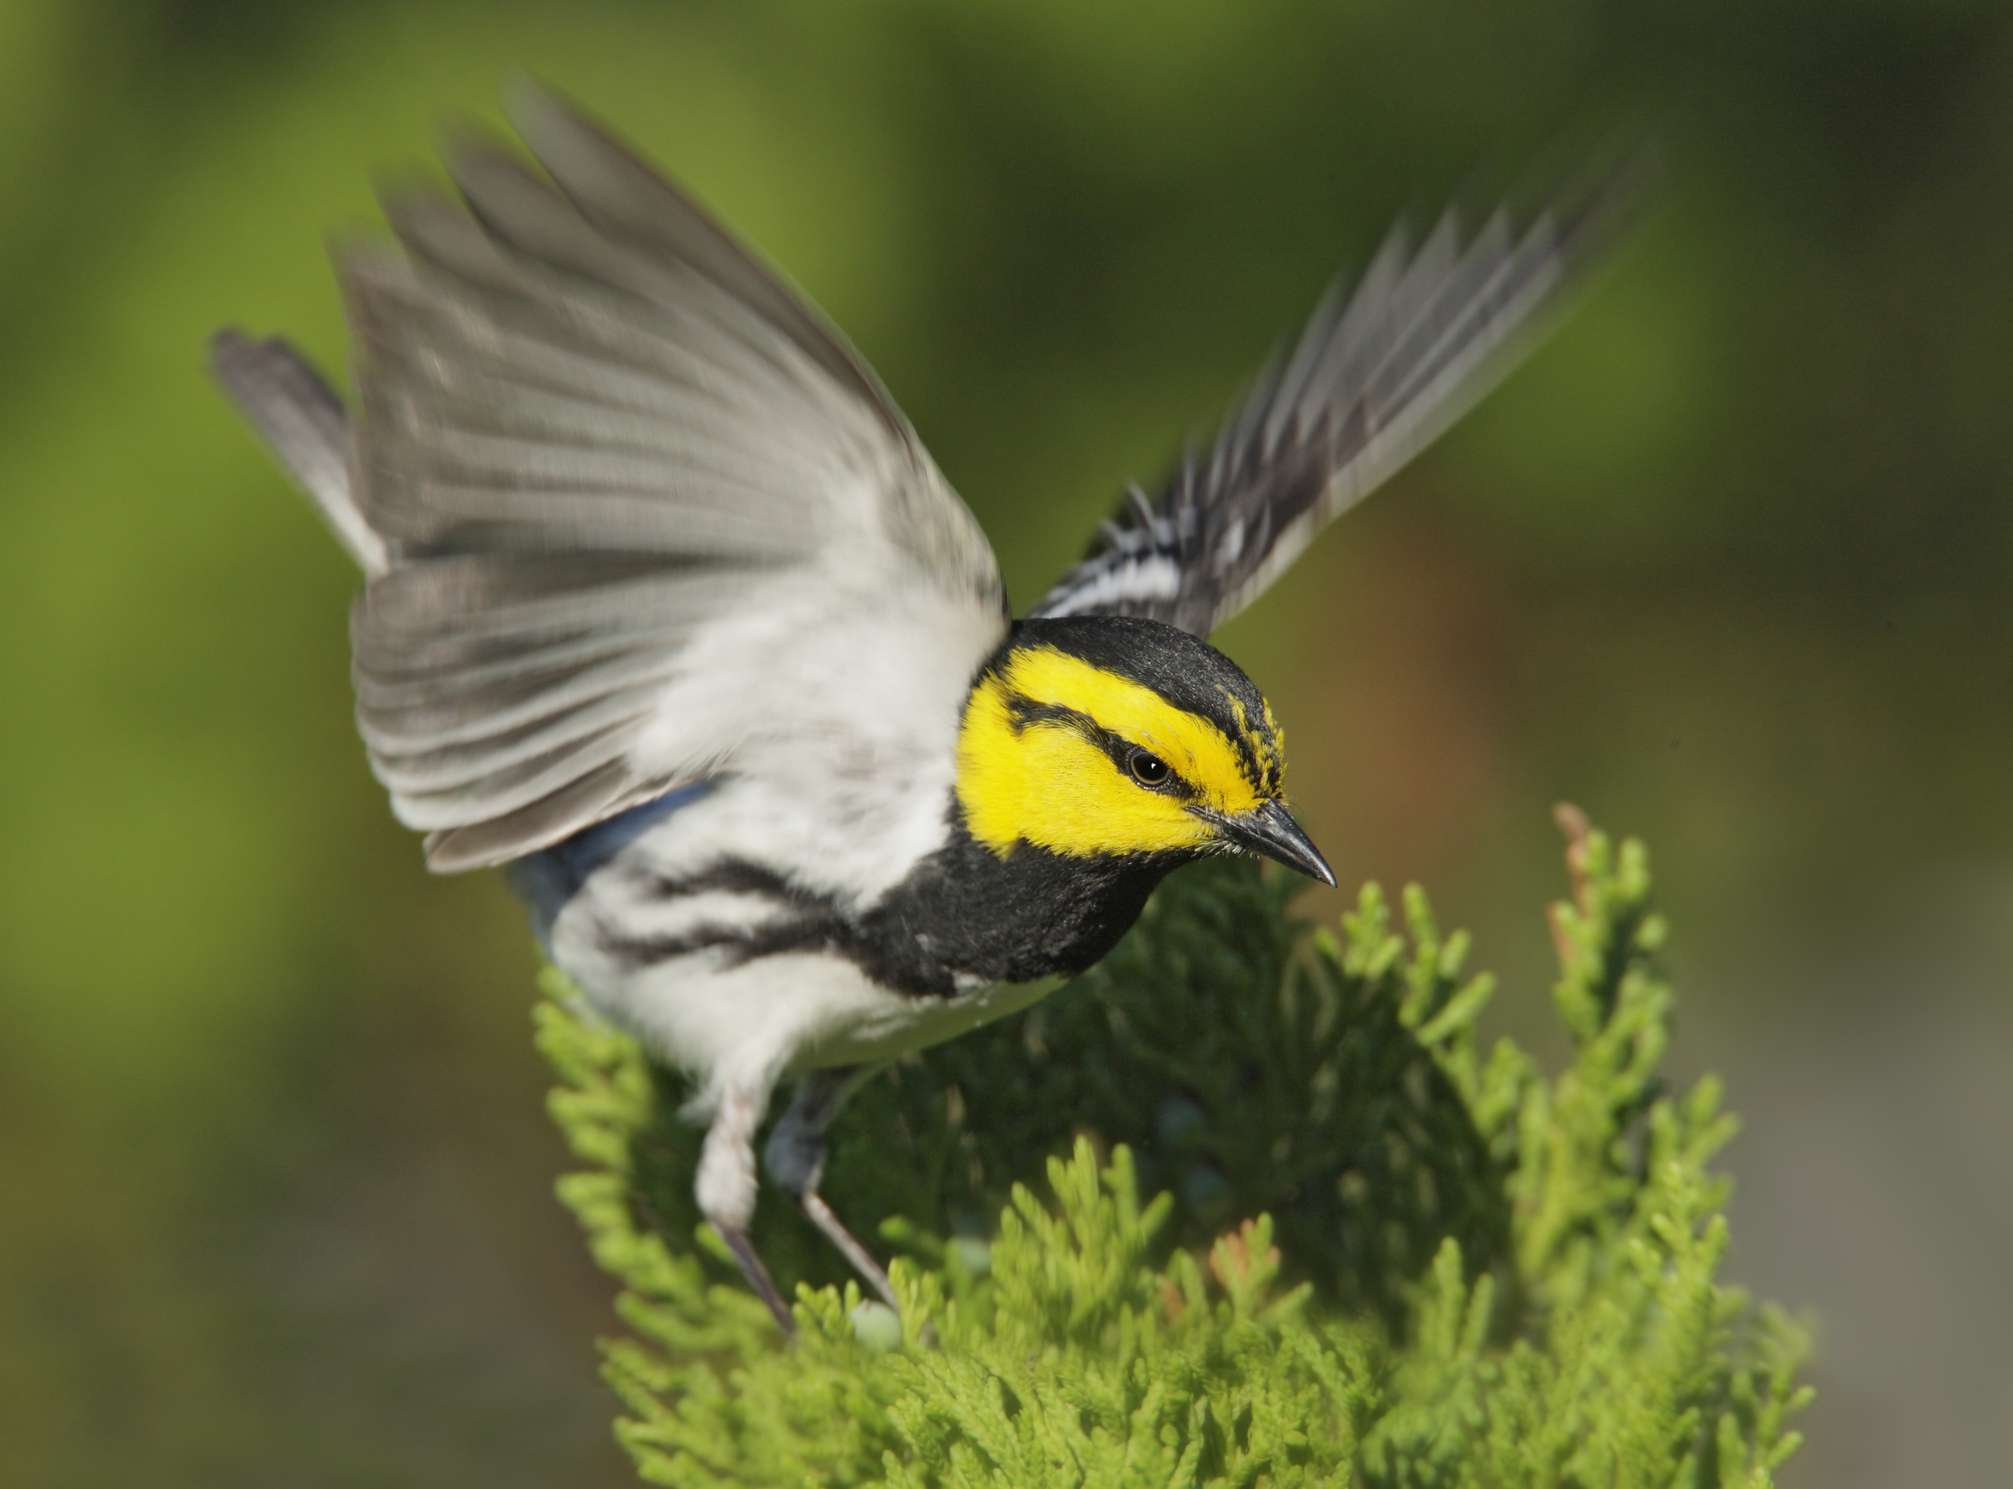 A golden-cheeked warbler with its wings raised standing on a small green plant.